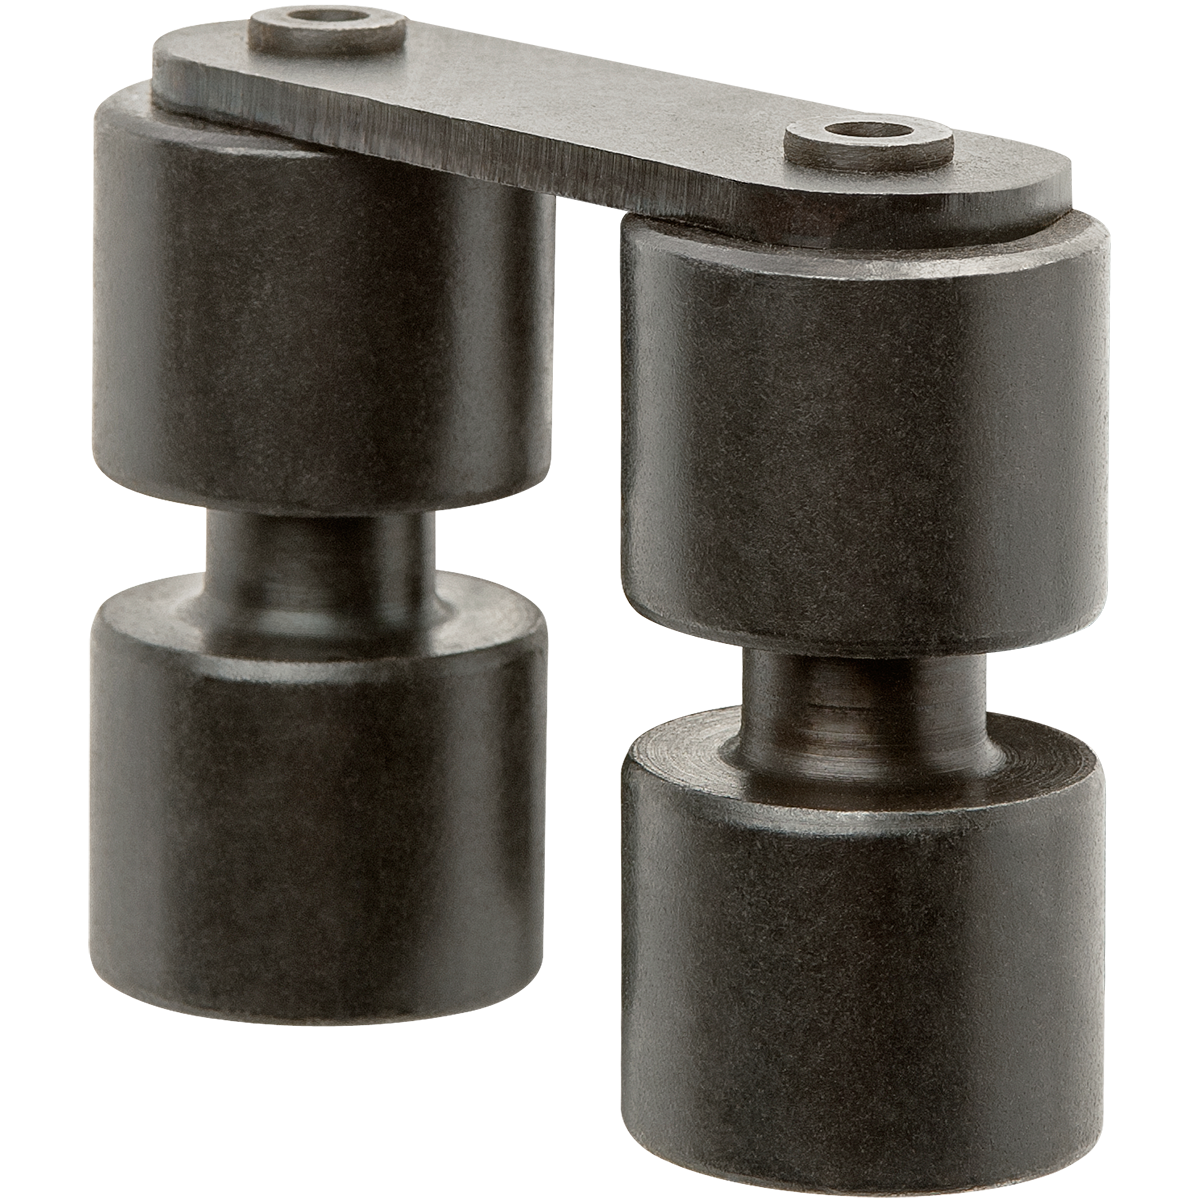 STEINER 54600HD Casters For H D Welding Screens